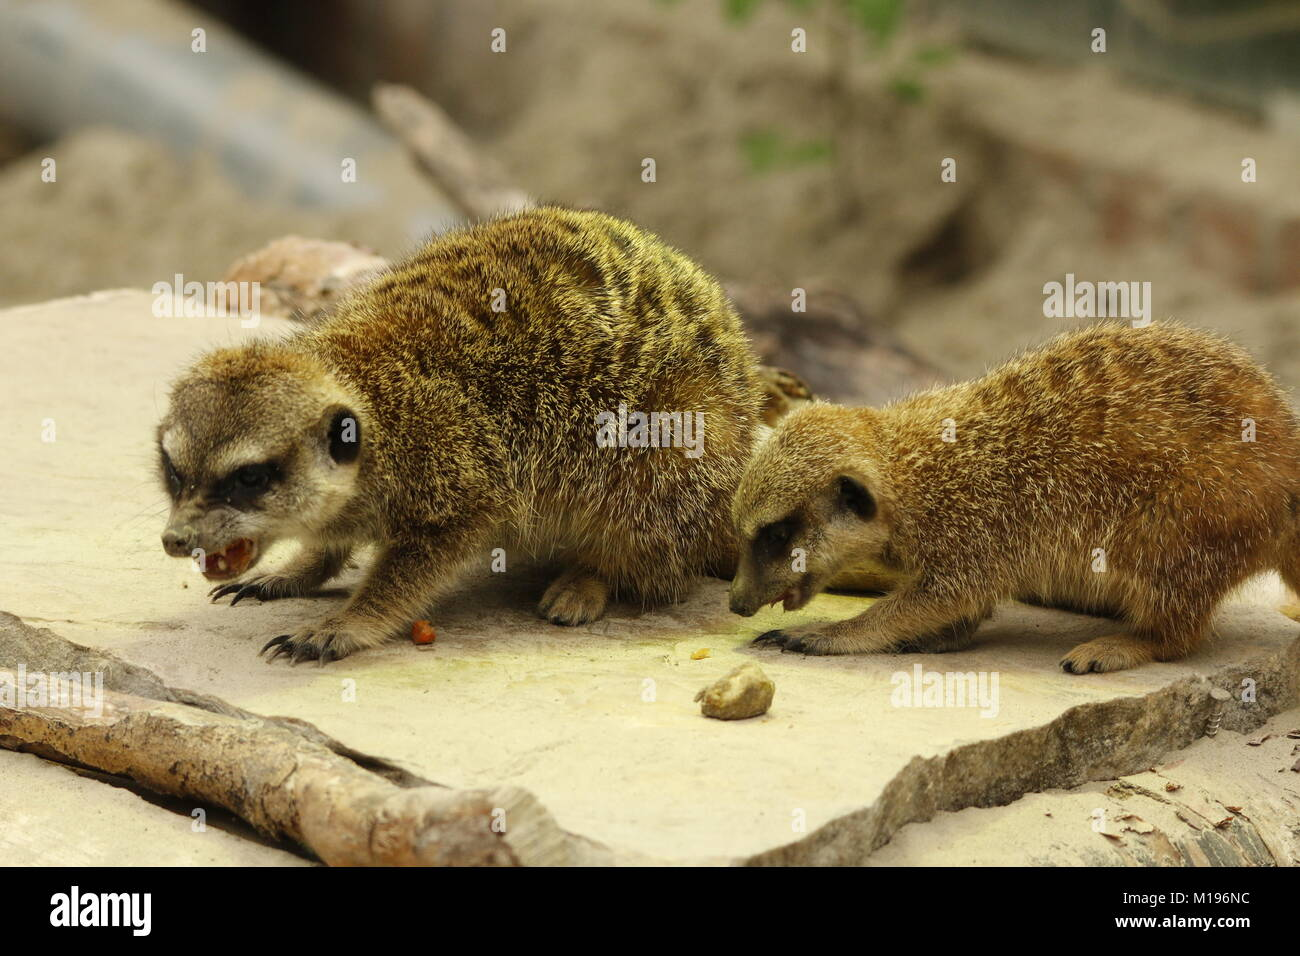 Meerkat in the zoo - Stock Image